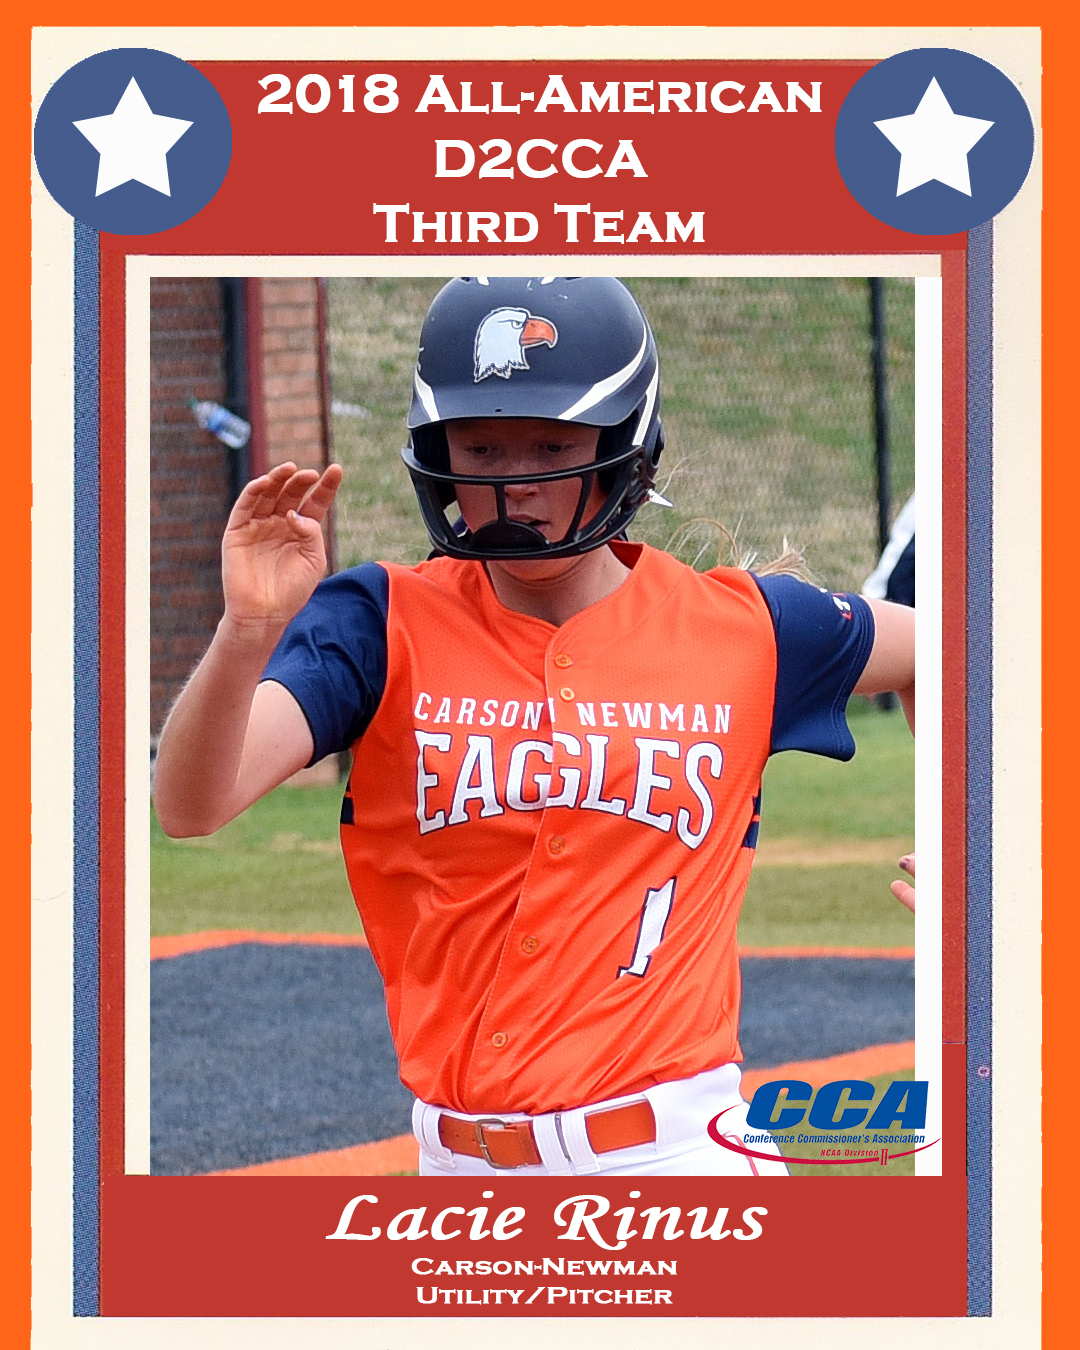 Rinus goes back-to-back as D2CCA All-American